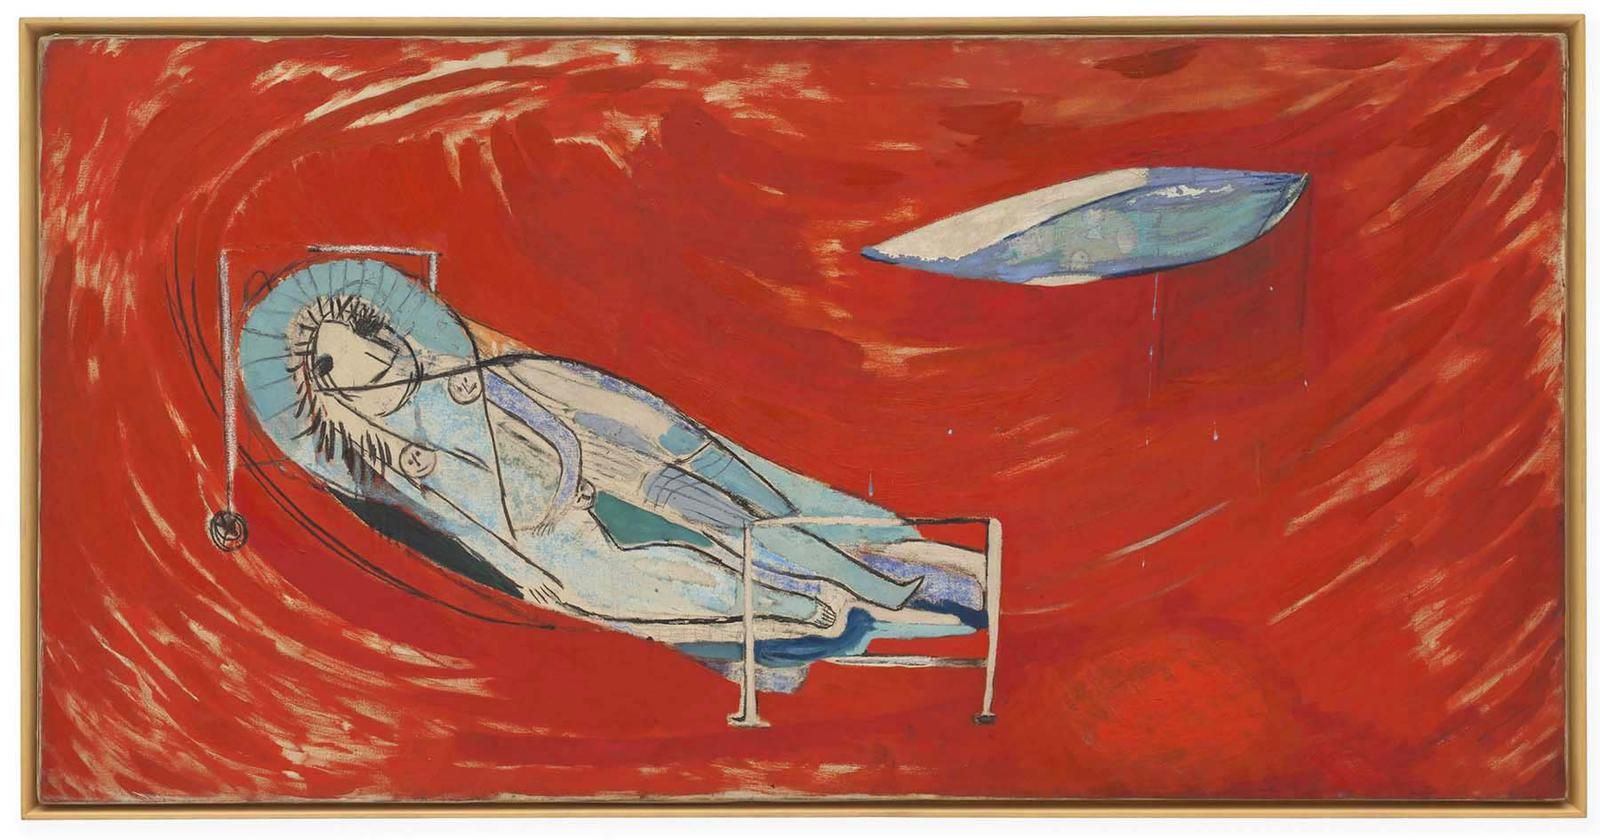 Louise Bourgeois Red Night 1946-48 oil on linen 30 x 60 inches (76.2 x 152.4 cm)  The George Economou Collection